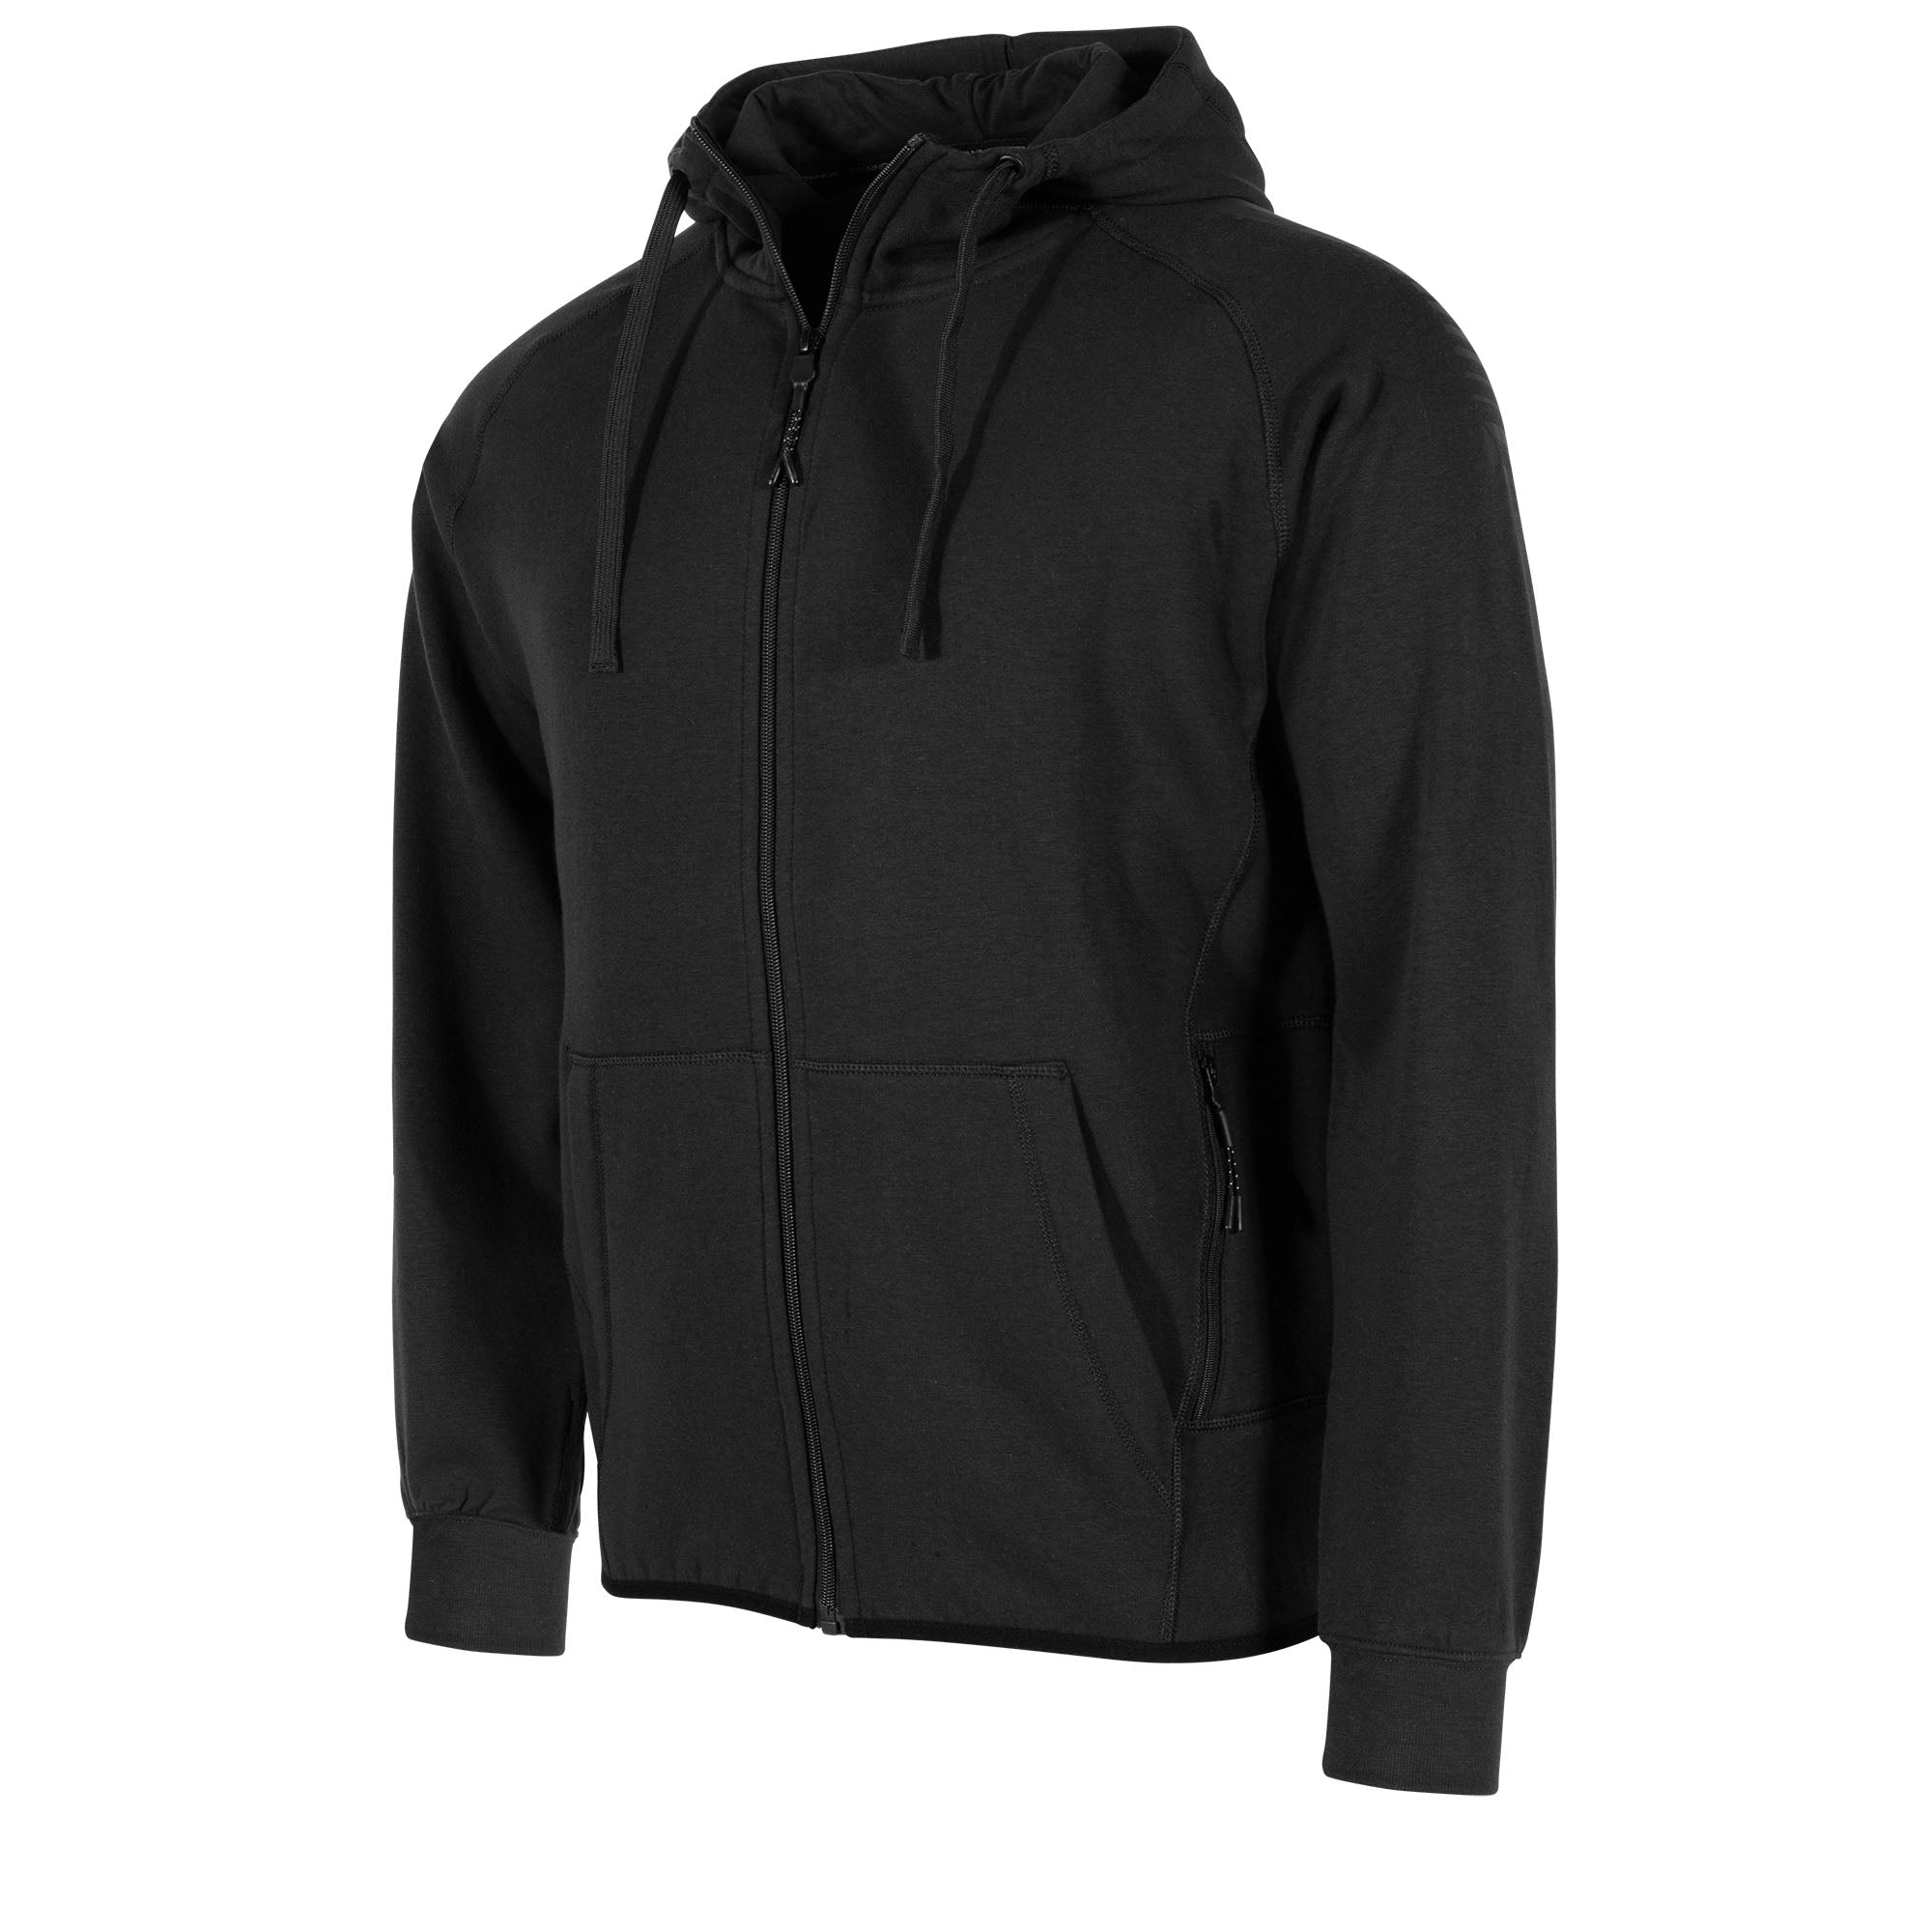 front of Stanno Ease Full Zip Hoodie in black with front pouch pockets, left side front zip pocket. Drawcord hood.